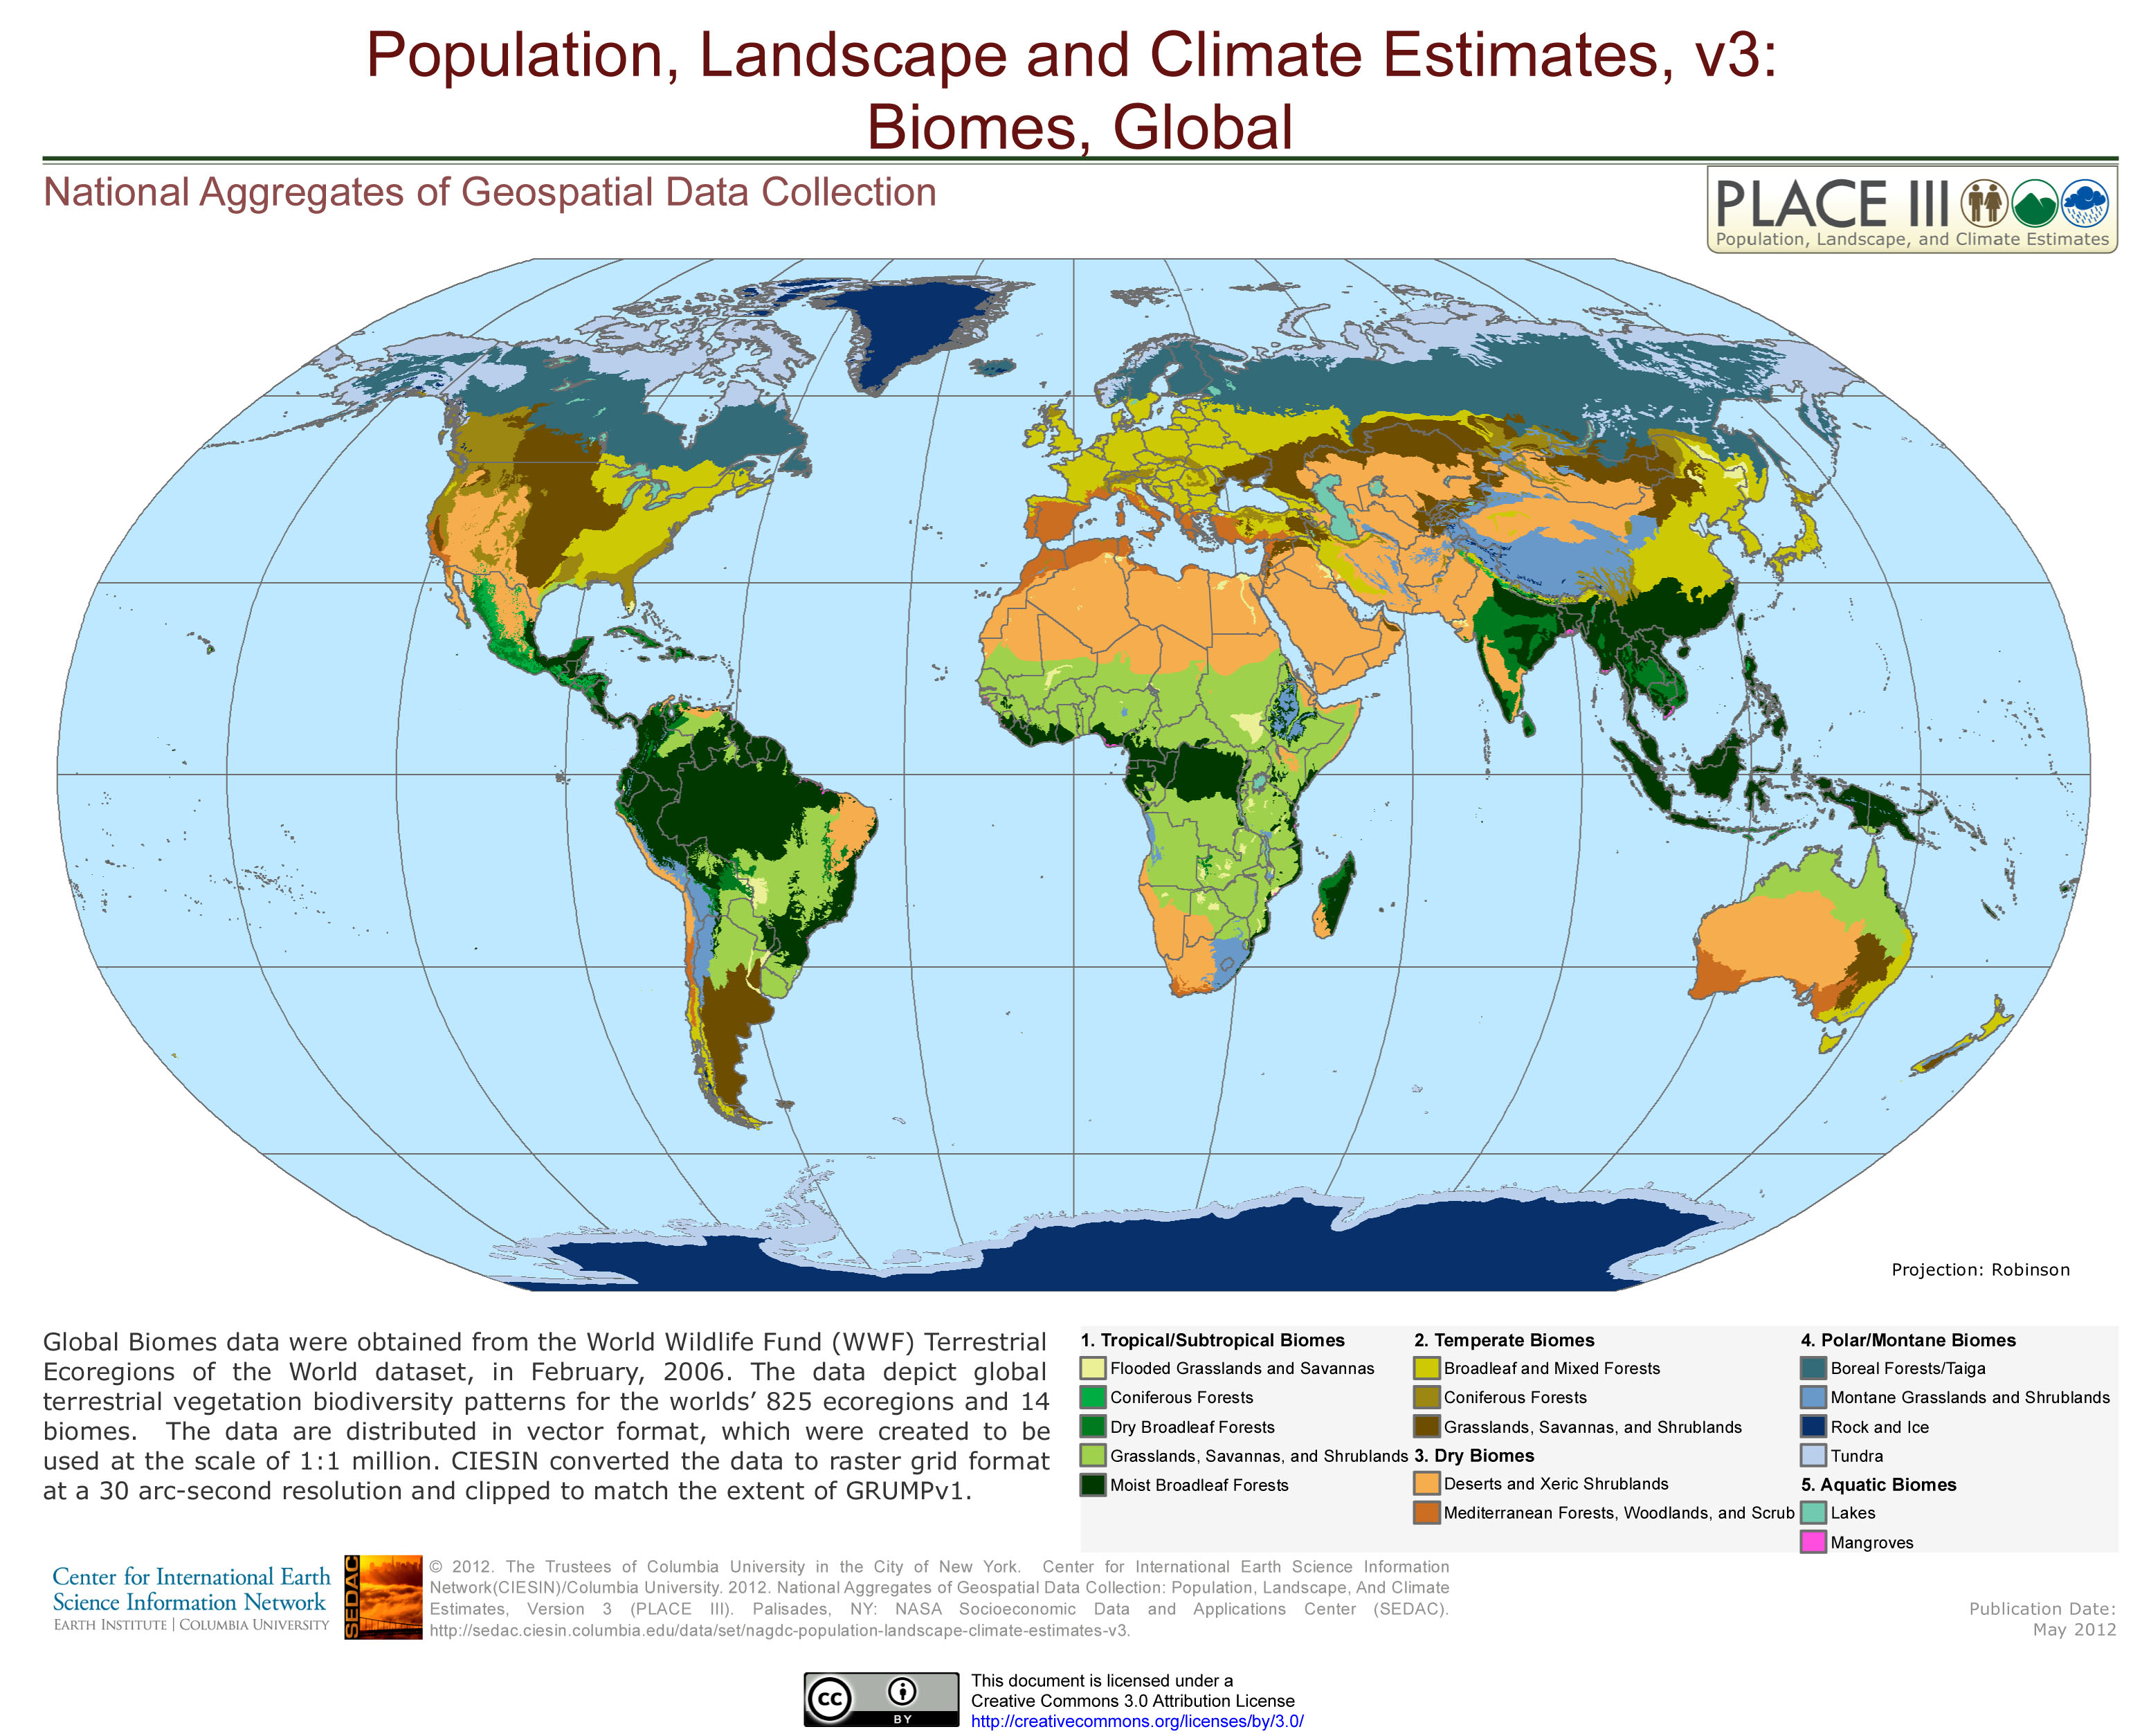 Does Anyone Know Where I Could Find Global Land Surface Area Occupied Per Biome